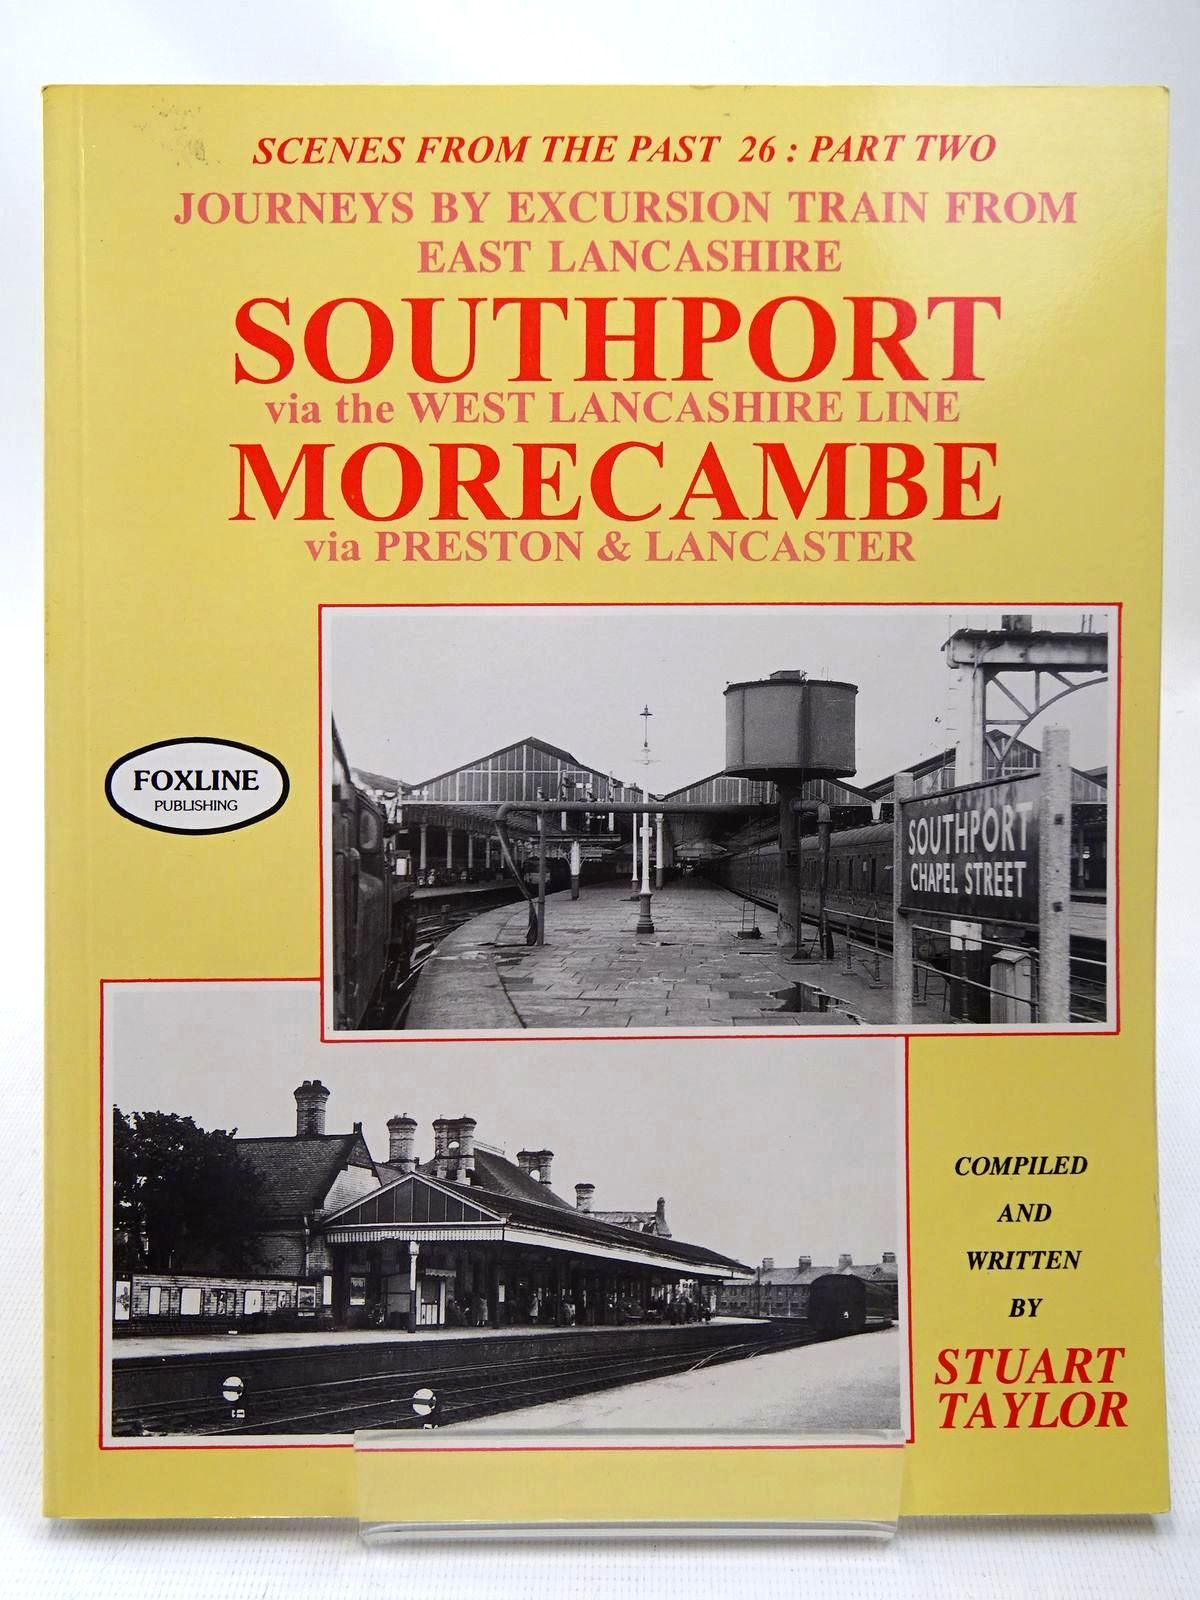 Photo of JOURNEY BY EXCURSION TRAIN FROM EAST LANCASHIRE SOUTHPORT VIA THE WEST LANCASHIRE LINE MORECAMBE VIA PRESTON & LANCASTER (SCENES FROM THE PAST 26: PART TWO) written by Taylor, Stuart published by Foxline (STOCK CODE: 2126800)  for sale by Stella & Rose's Books